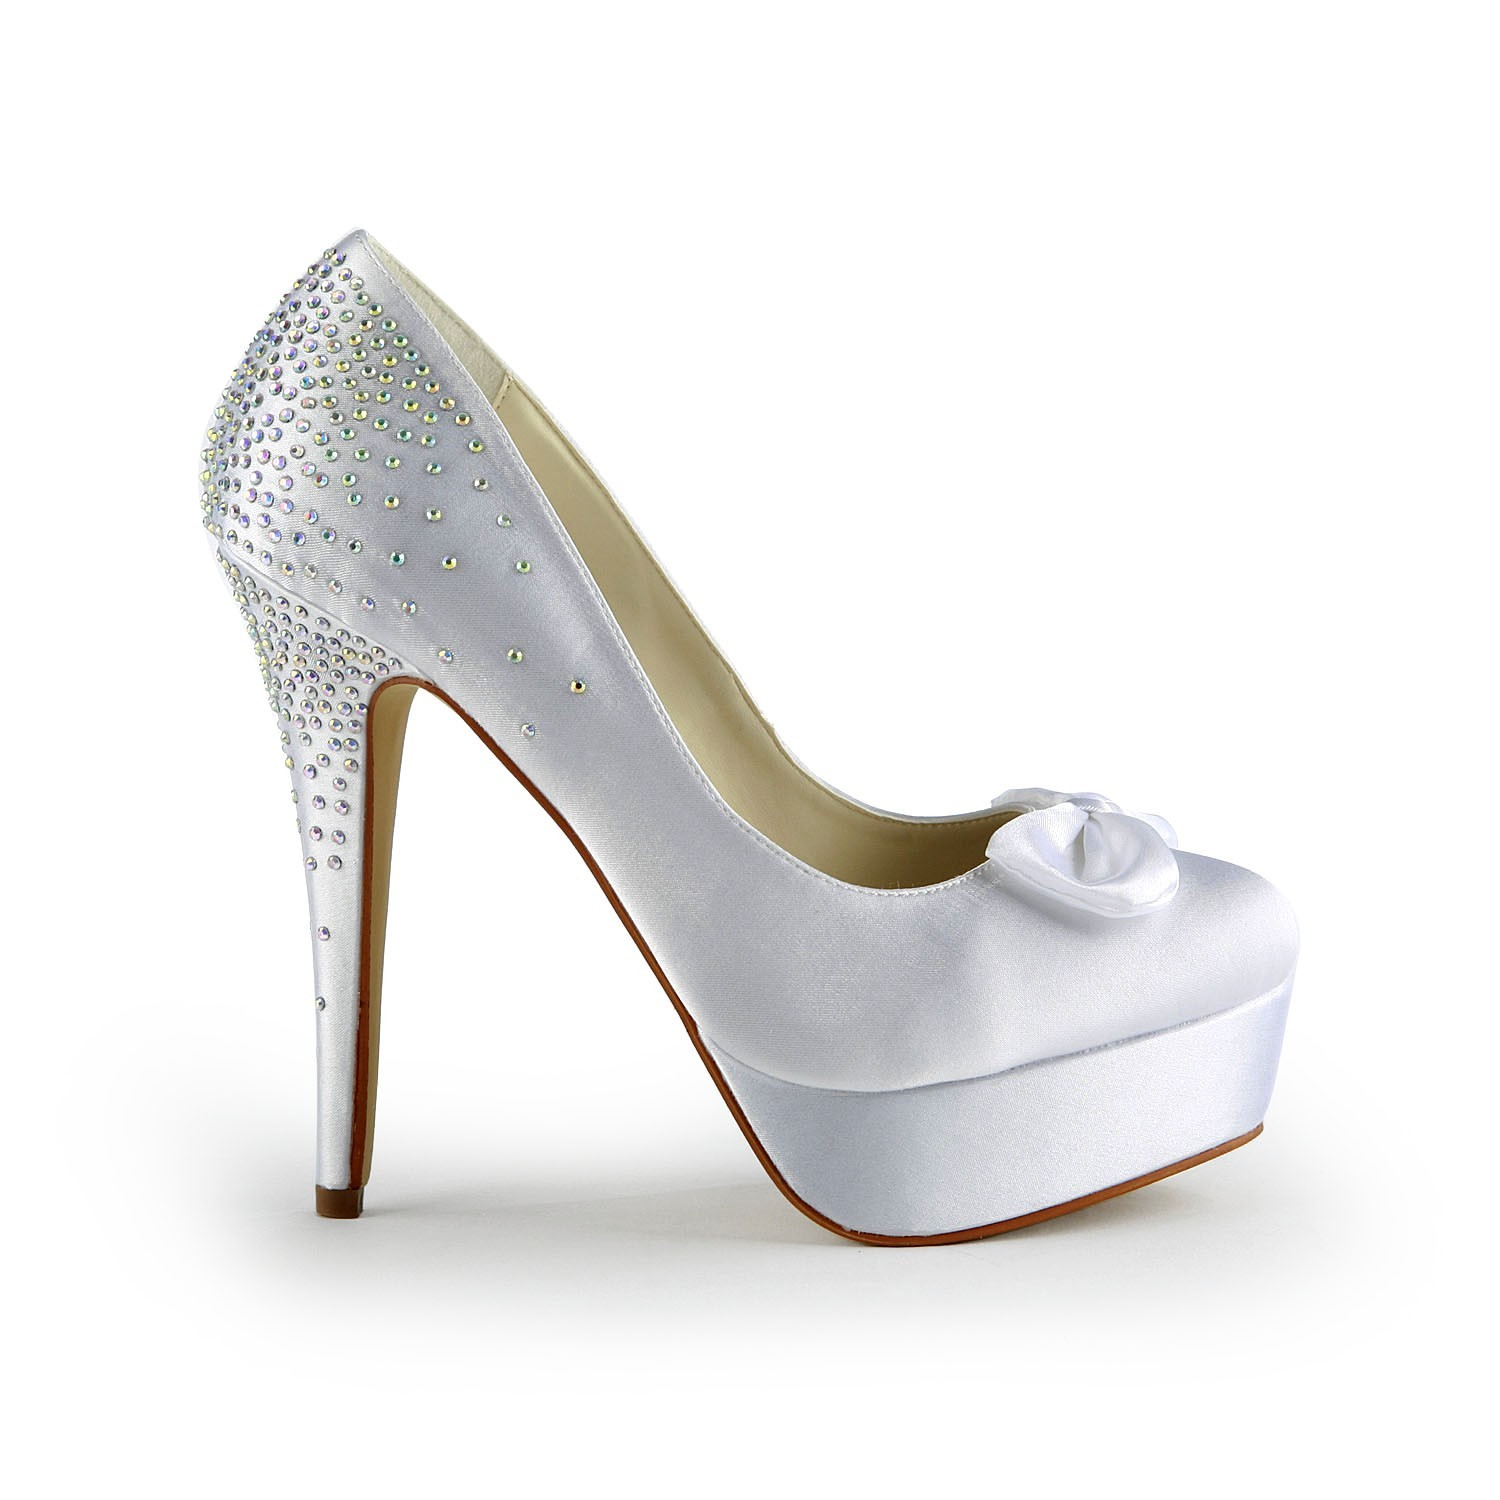 Women S Satin Stiletto Heel Closed Toe Platform White Wedding Shoes With Bowknot Promlily Online